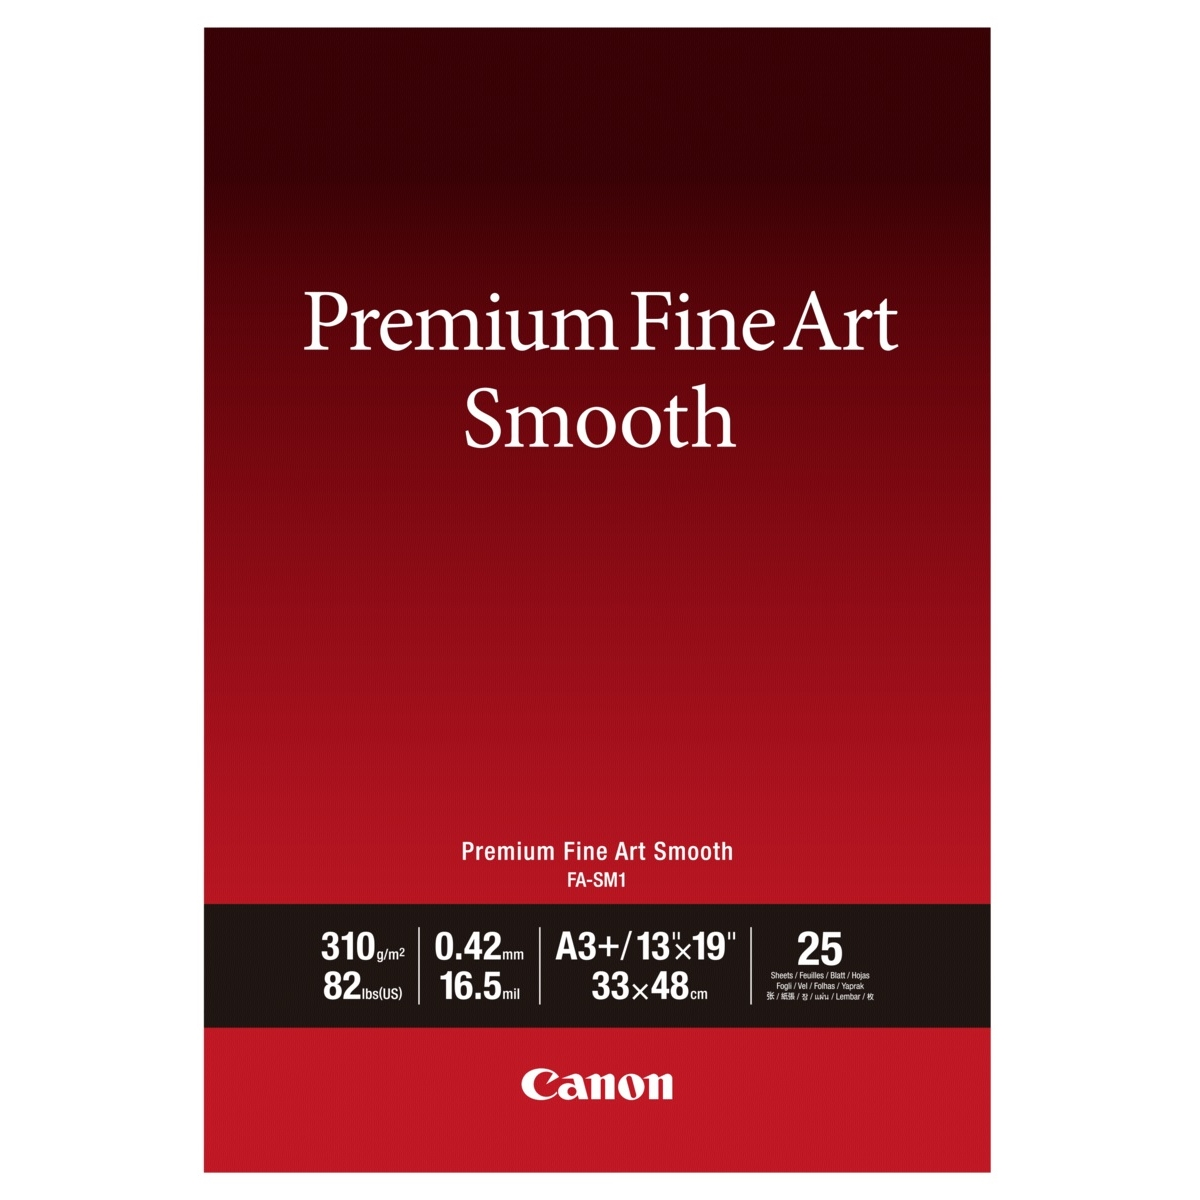 Original Canon FA-SM1 310gsm Premium Fine Art Smooth A3+ Cotton Matte Photo Paper - 25 Sheets (1711C004)